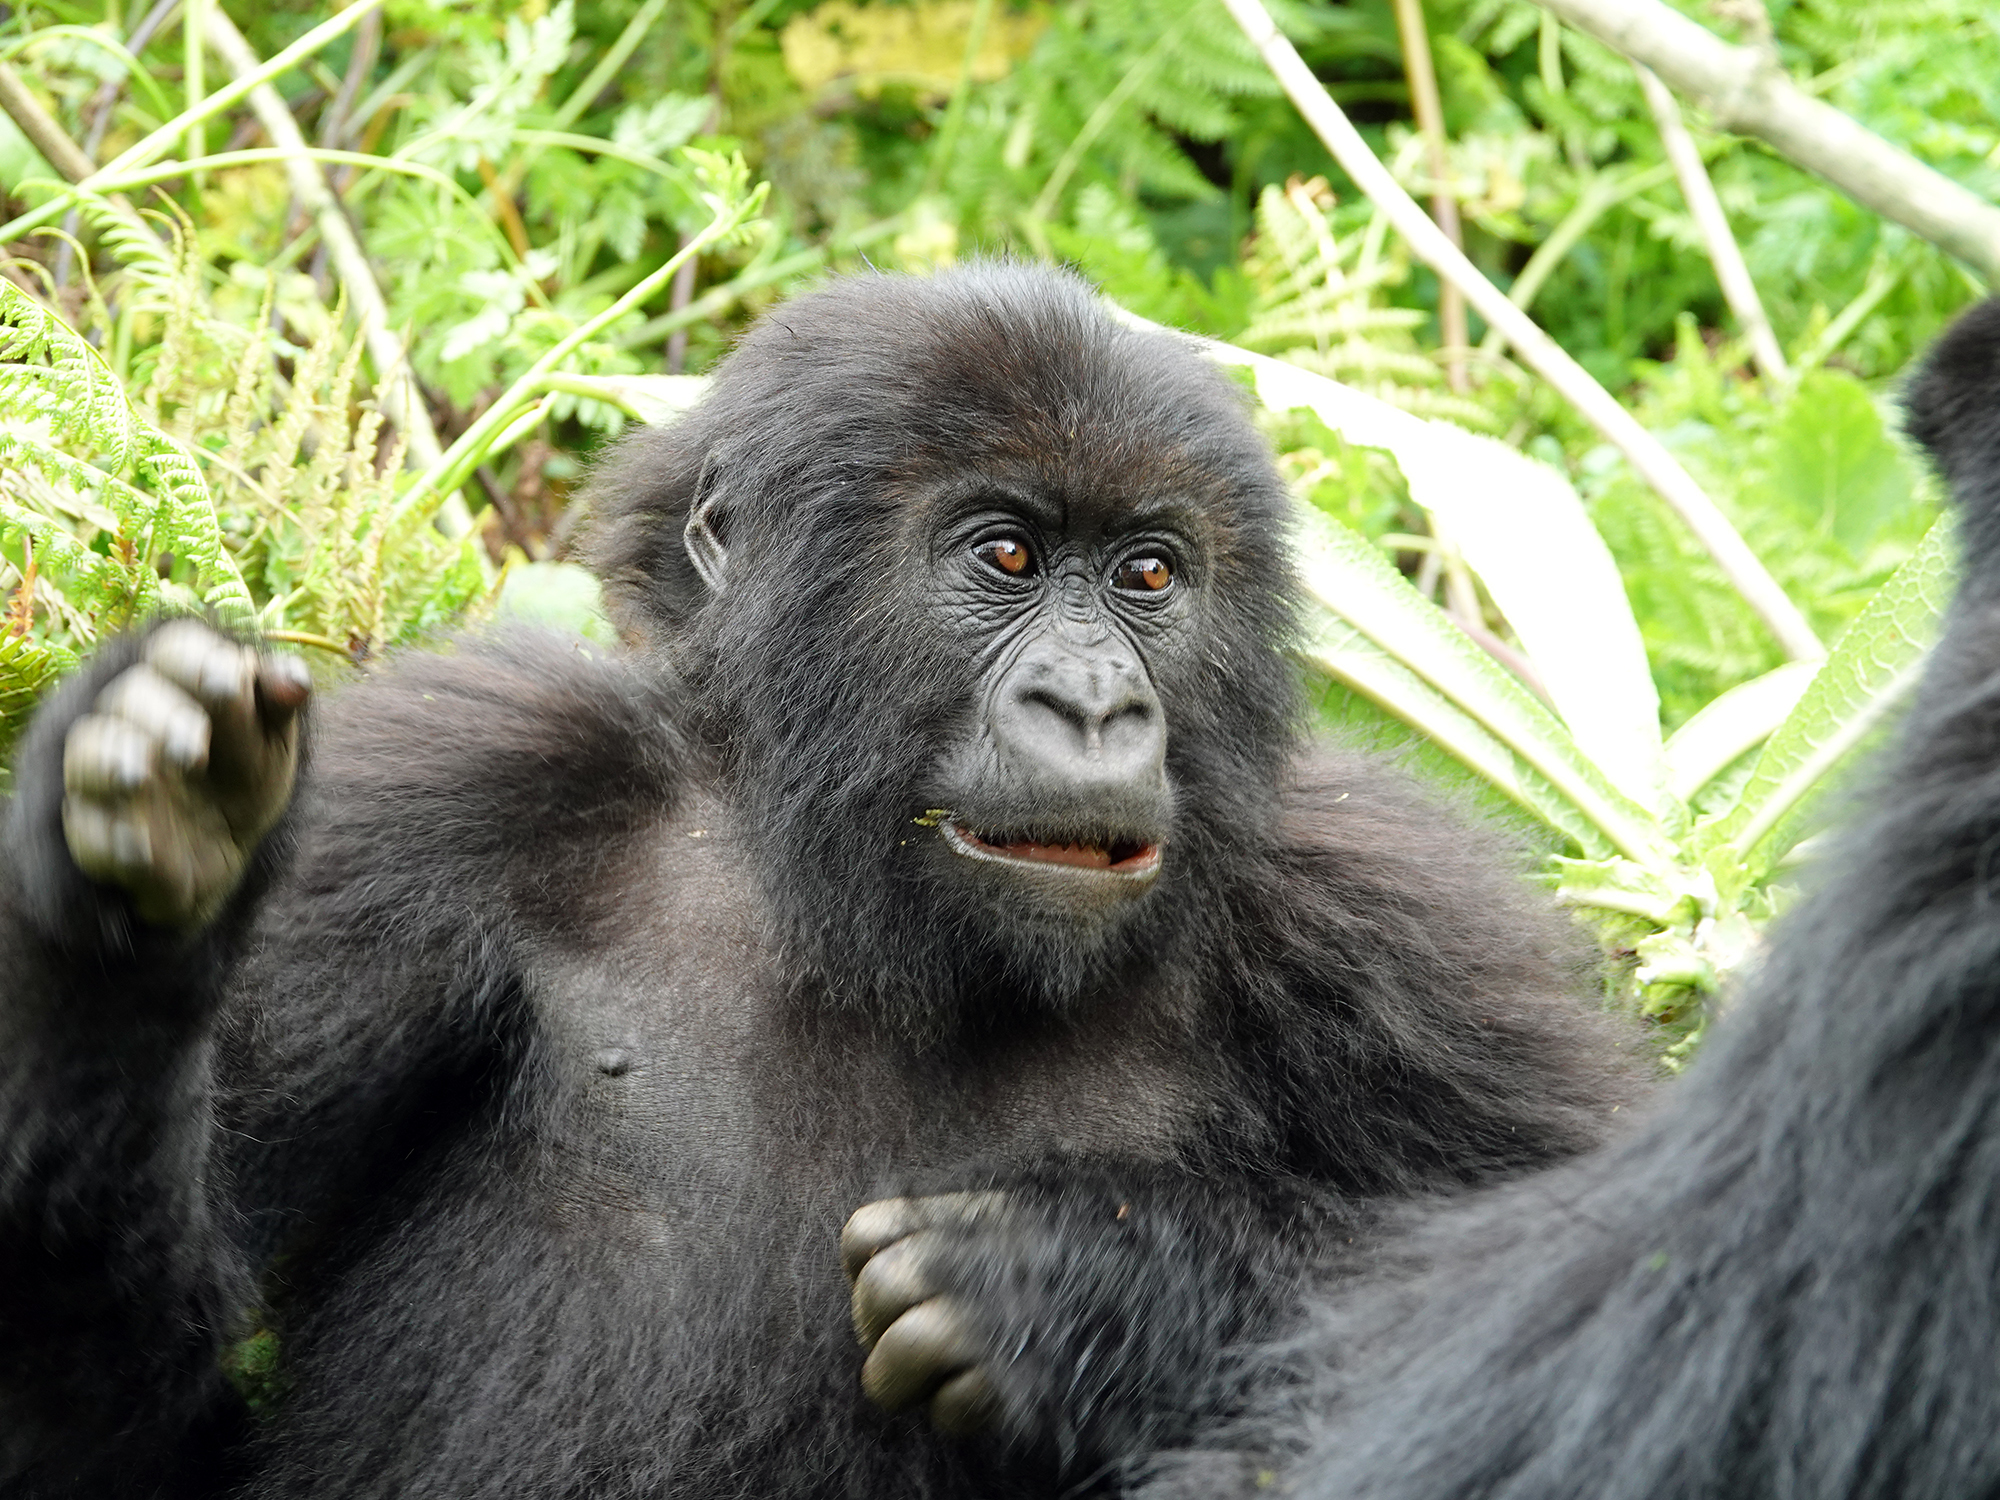 A 3 year old male mountain gorilla from the Titus family in Rwanda